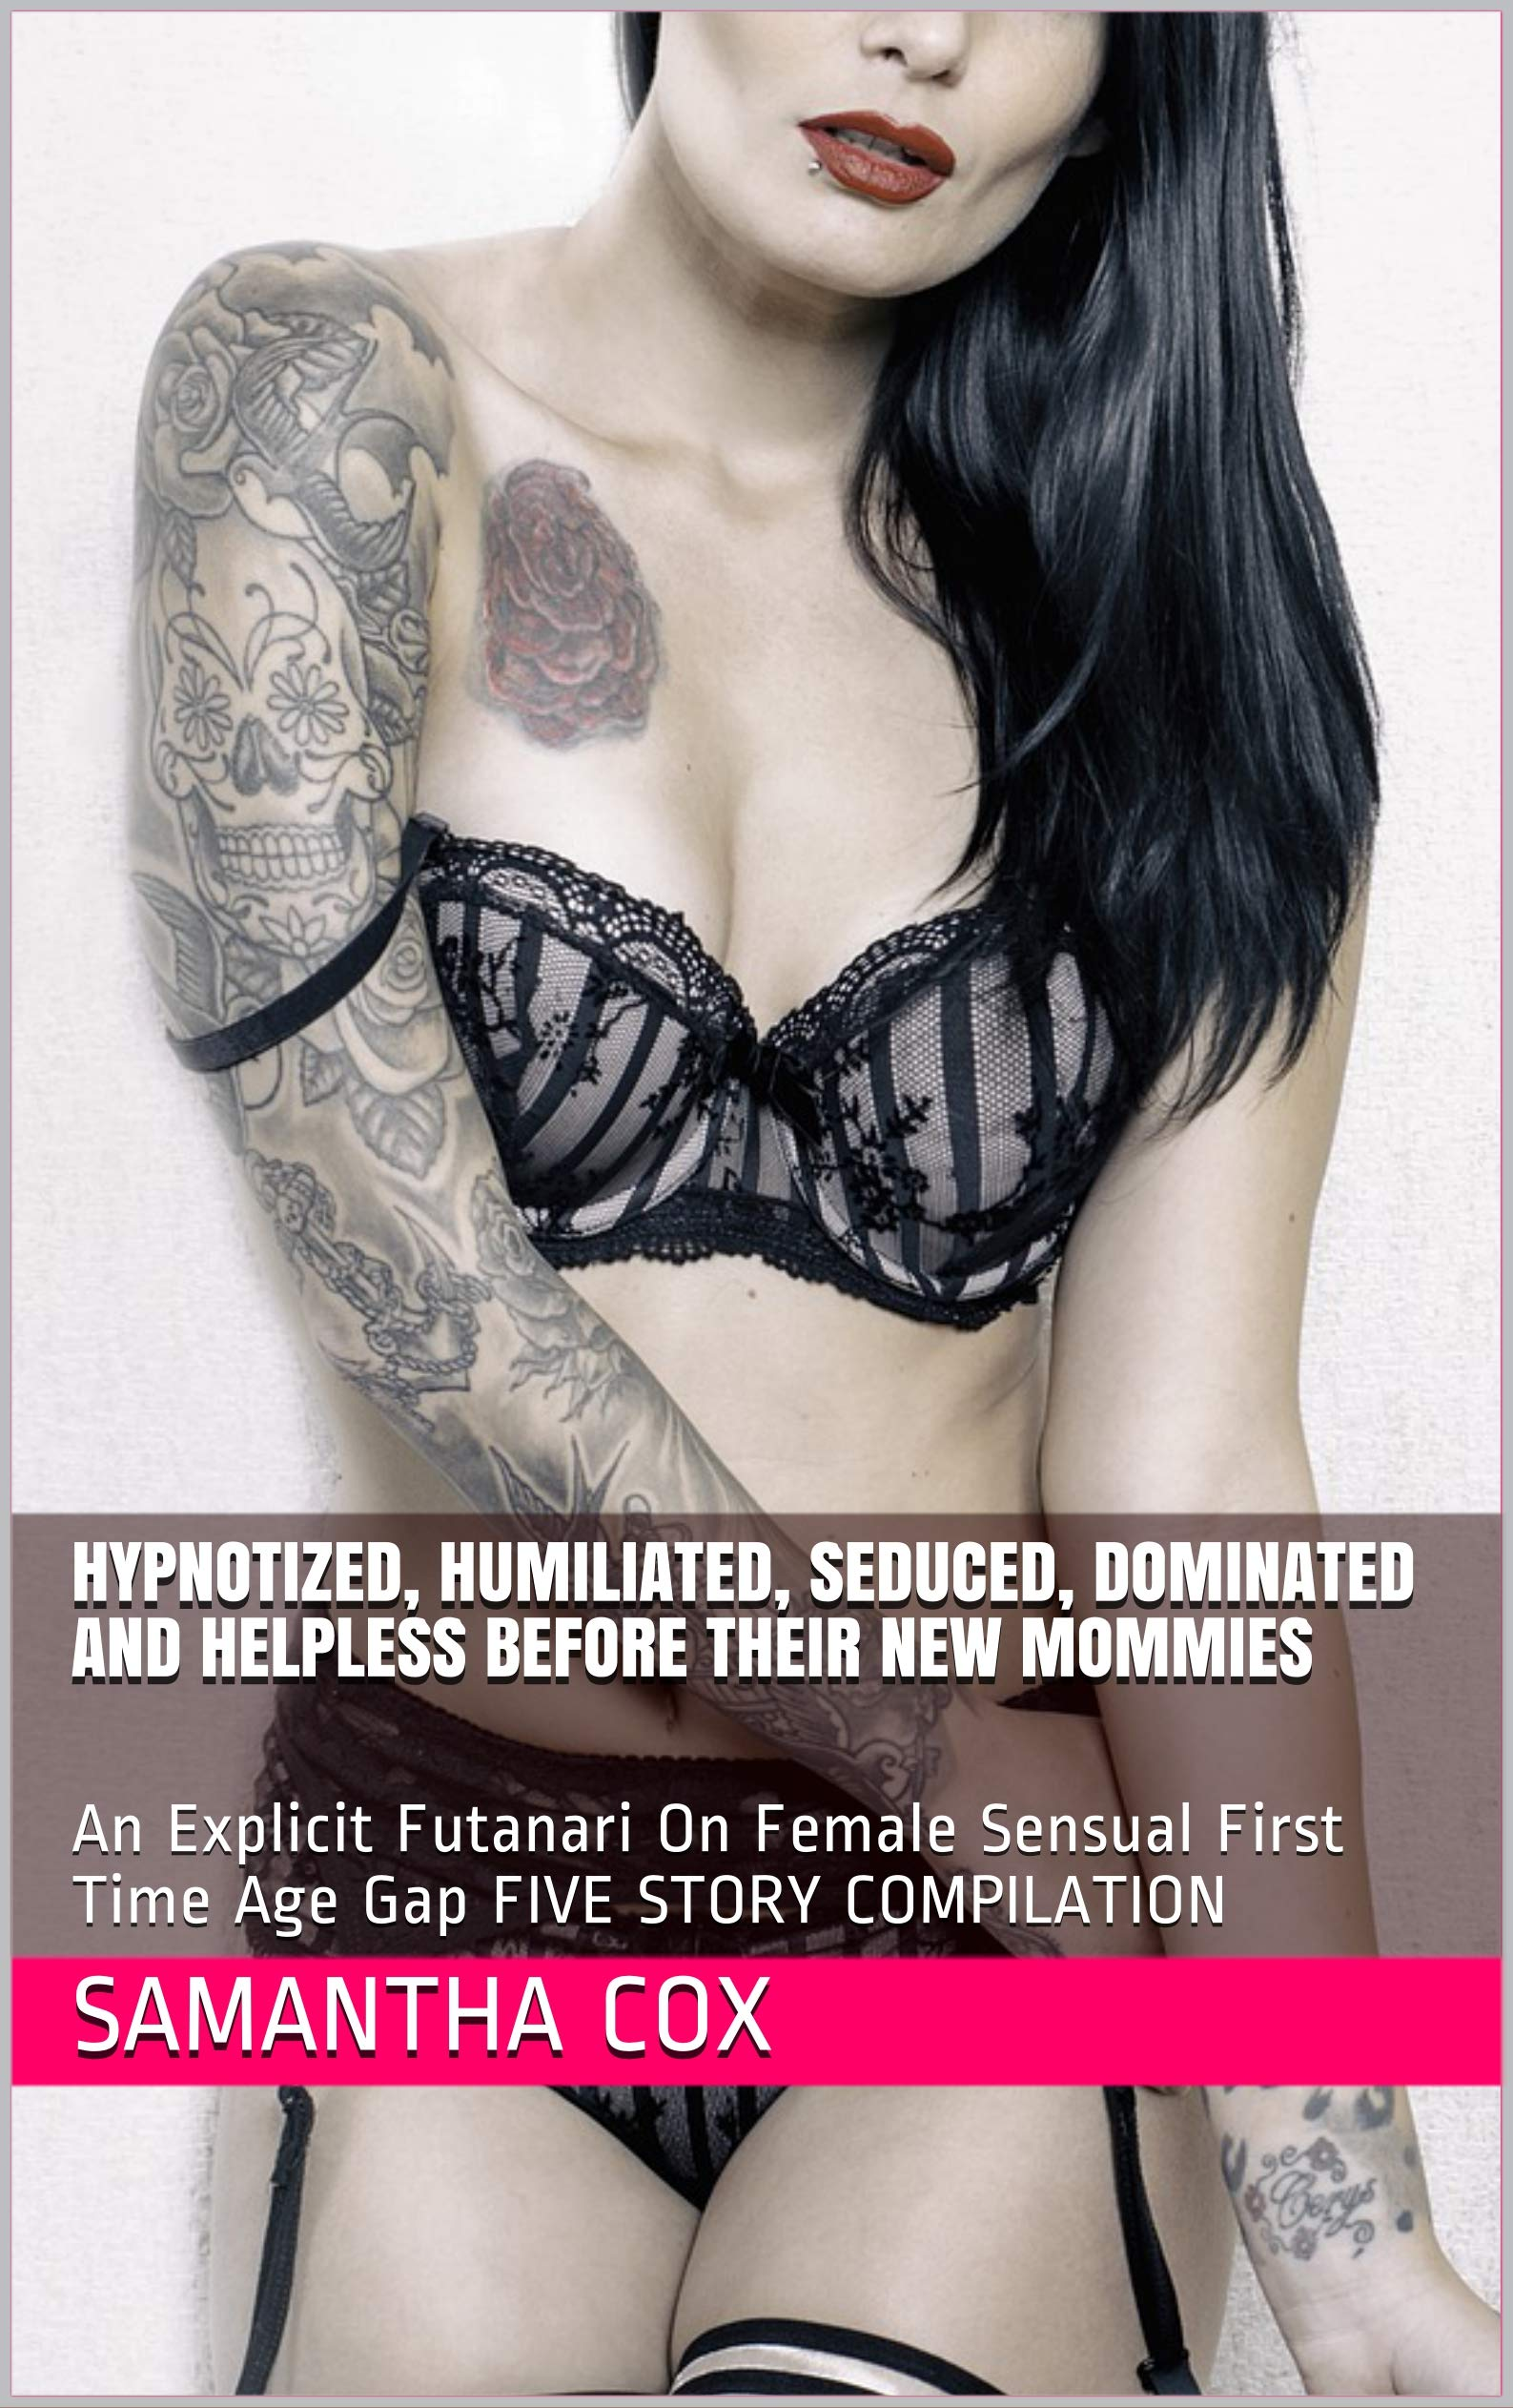 Hypnotized, Humiliated, Seduced, Dominated And Helpless Before Their New Mommies: An Explicit Futanari On Female Sensual First Time Age Gap FIVE STORY COMPILATION